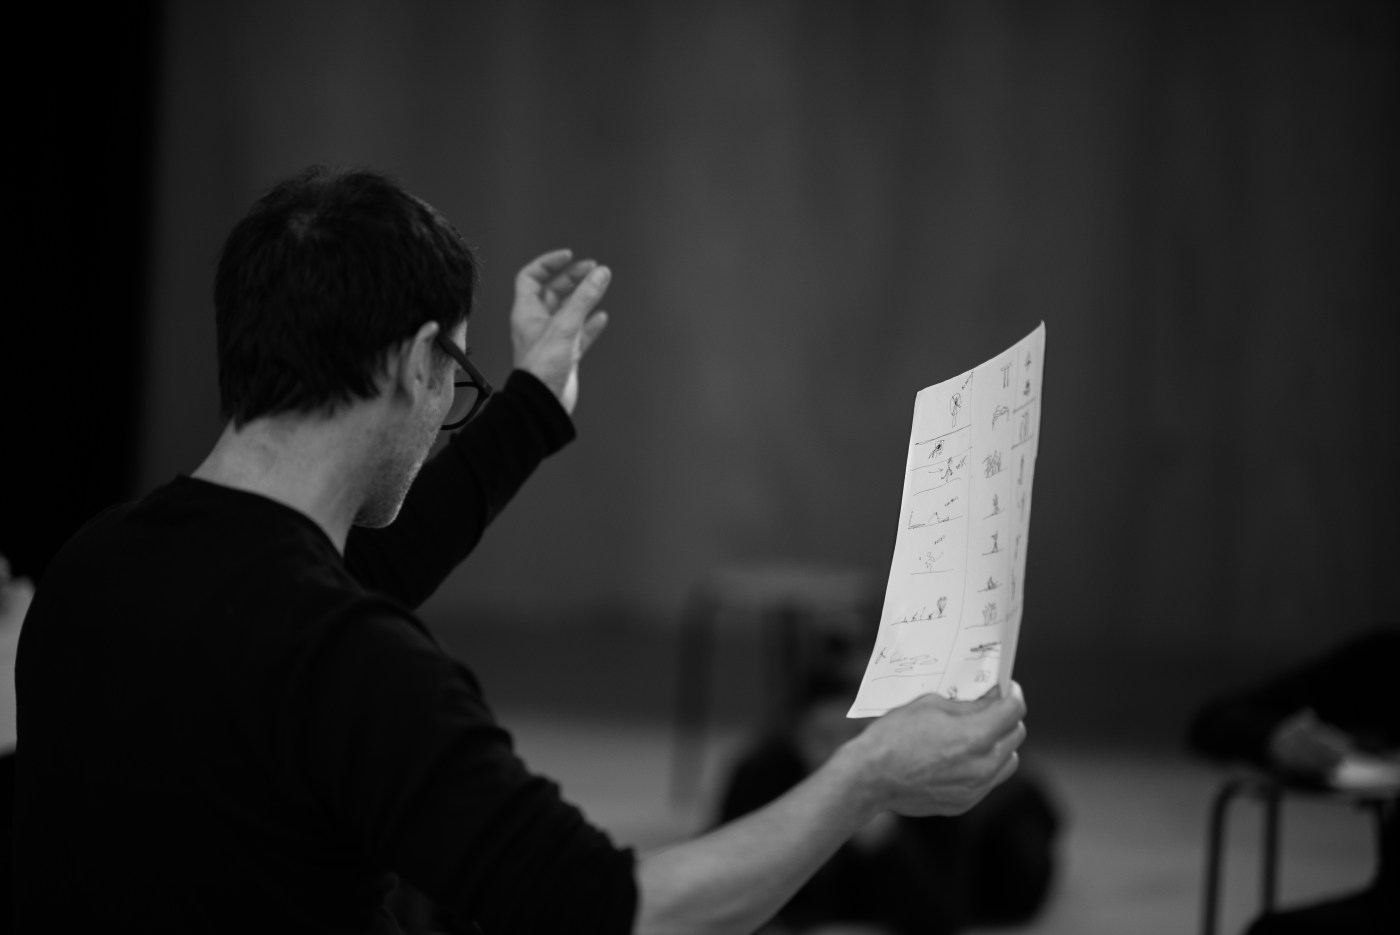 The Great Tamer_rehearsal_by Dimitris Papaioannou_rehearsals_photograph by Julian Mommert_JCM_4385_20161125